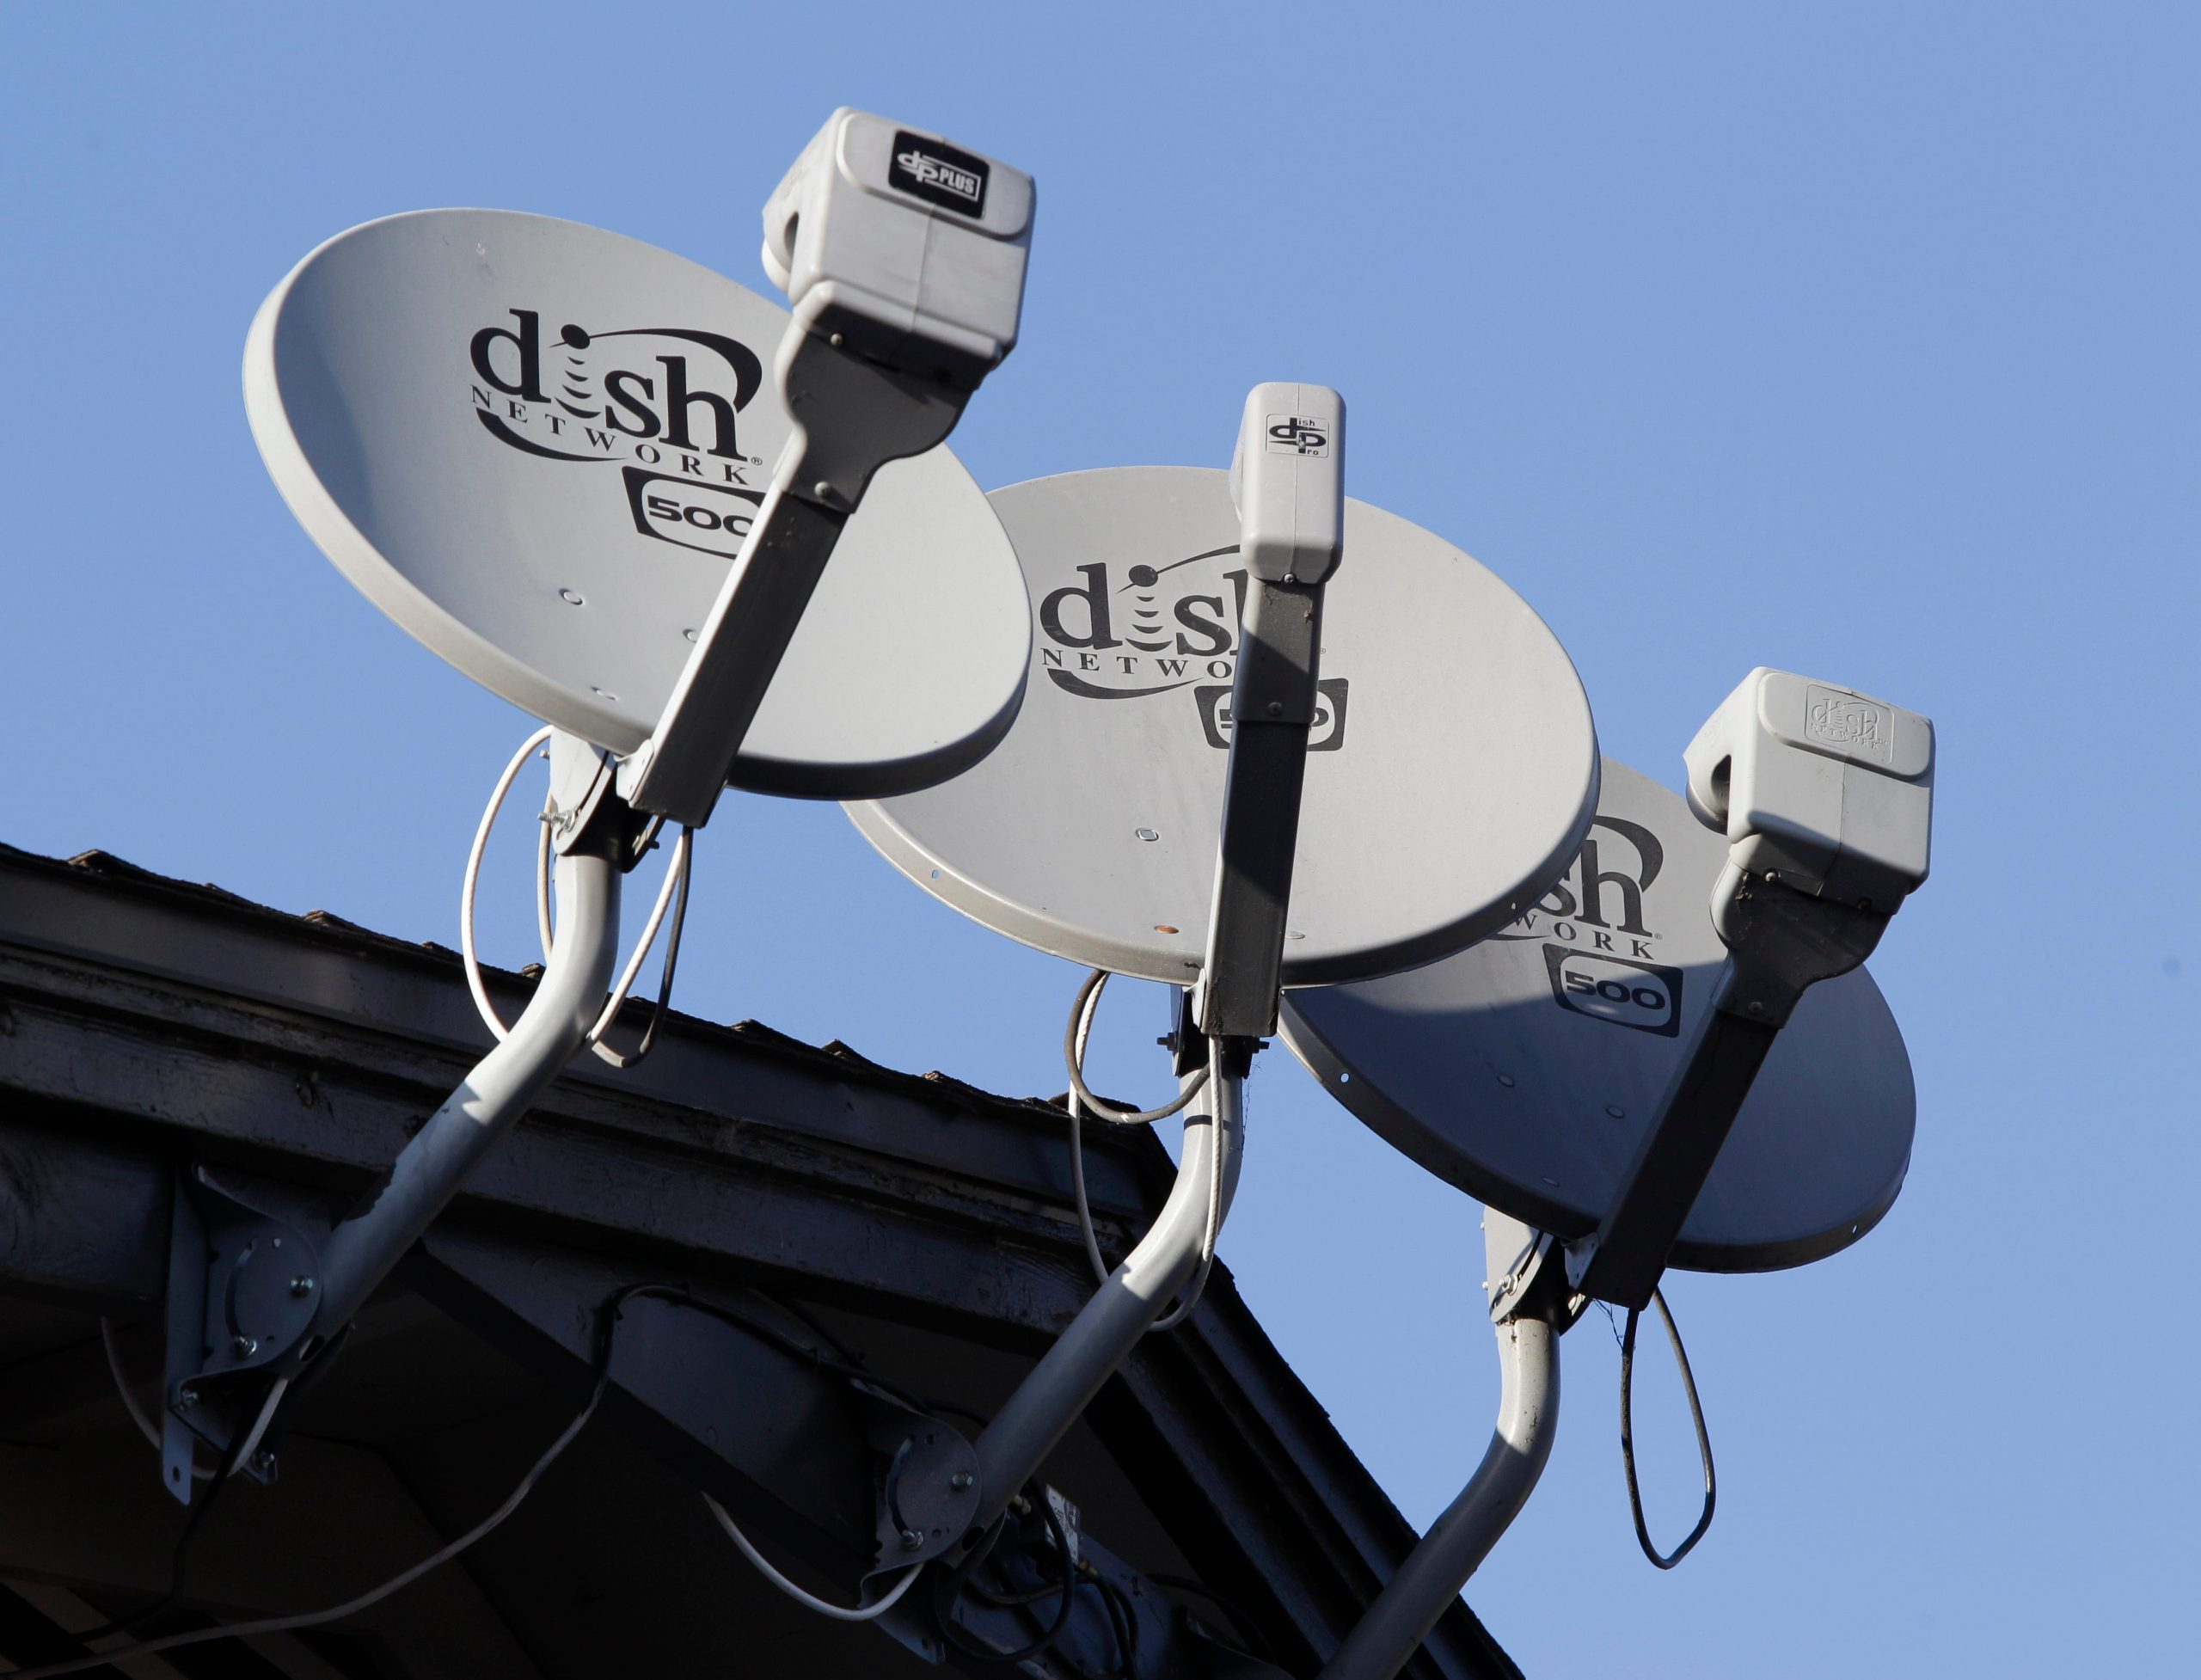 Dish Network removes Nexstar's local TV stations in 115 markets over failed negotiations